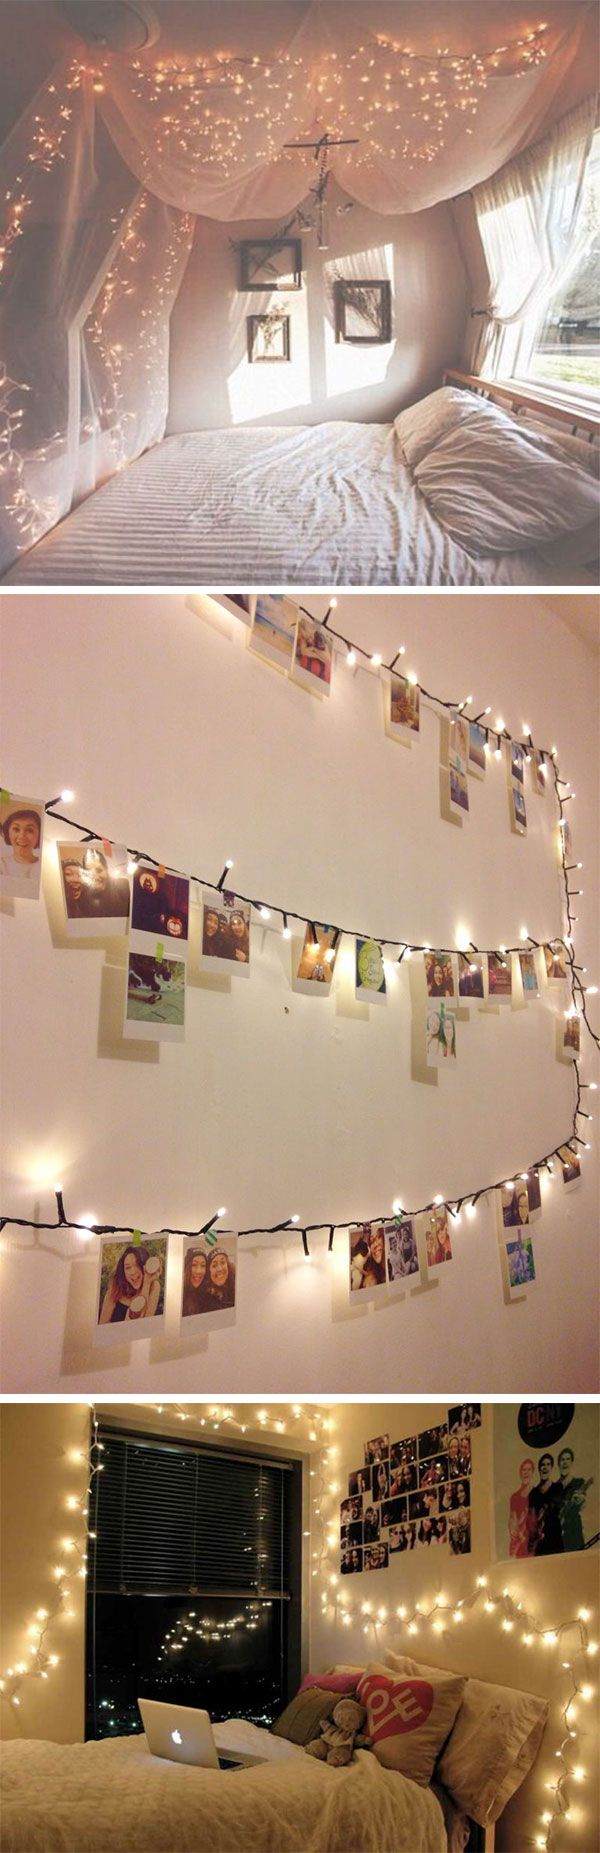 13 ways to use fairy lights to make your home look magical  Dream BedroomDiy  BedroomCozy Teen BedroomCouple Bedroom DecorBedroom. Best 25  Diy bedroom decor ideas on Pinterest   Diy bedroom  Diy